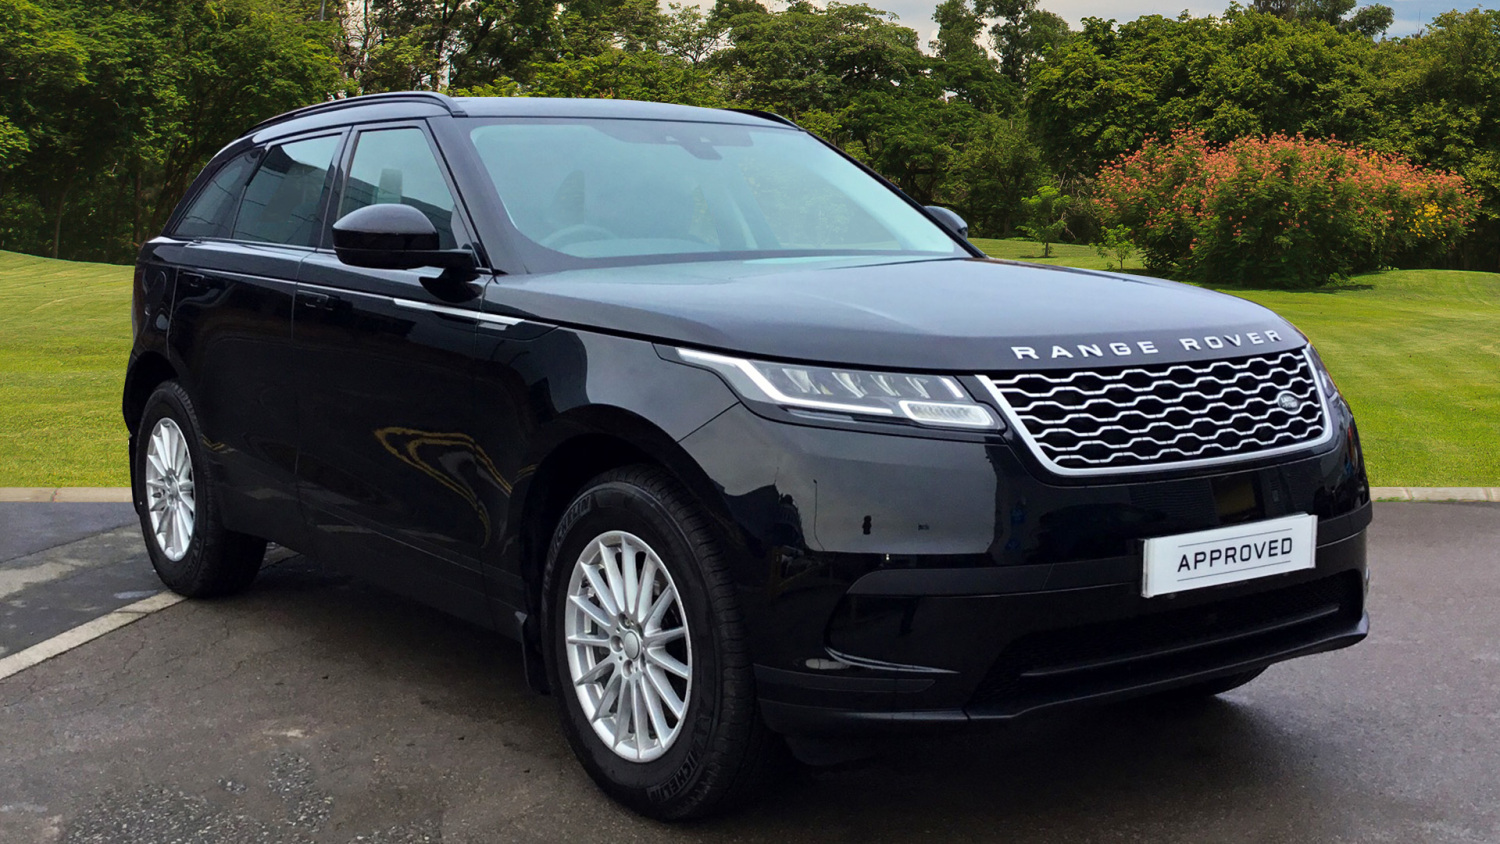 used land rover range rover velar 2 0 d180 5dr auto diesel estate for sale farnell land rover. Black Bedroom Furniture Sets. Home Design Ideas